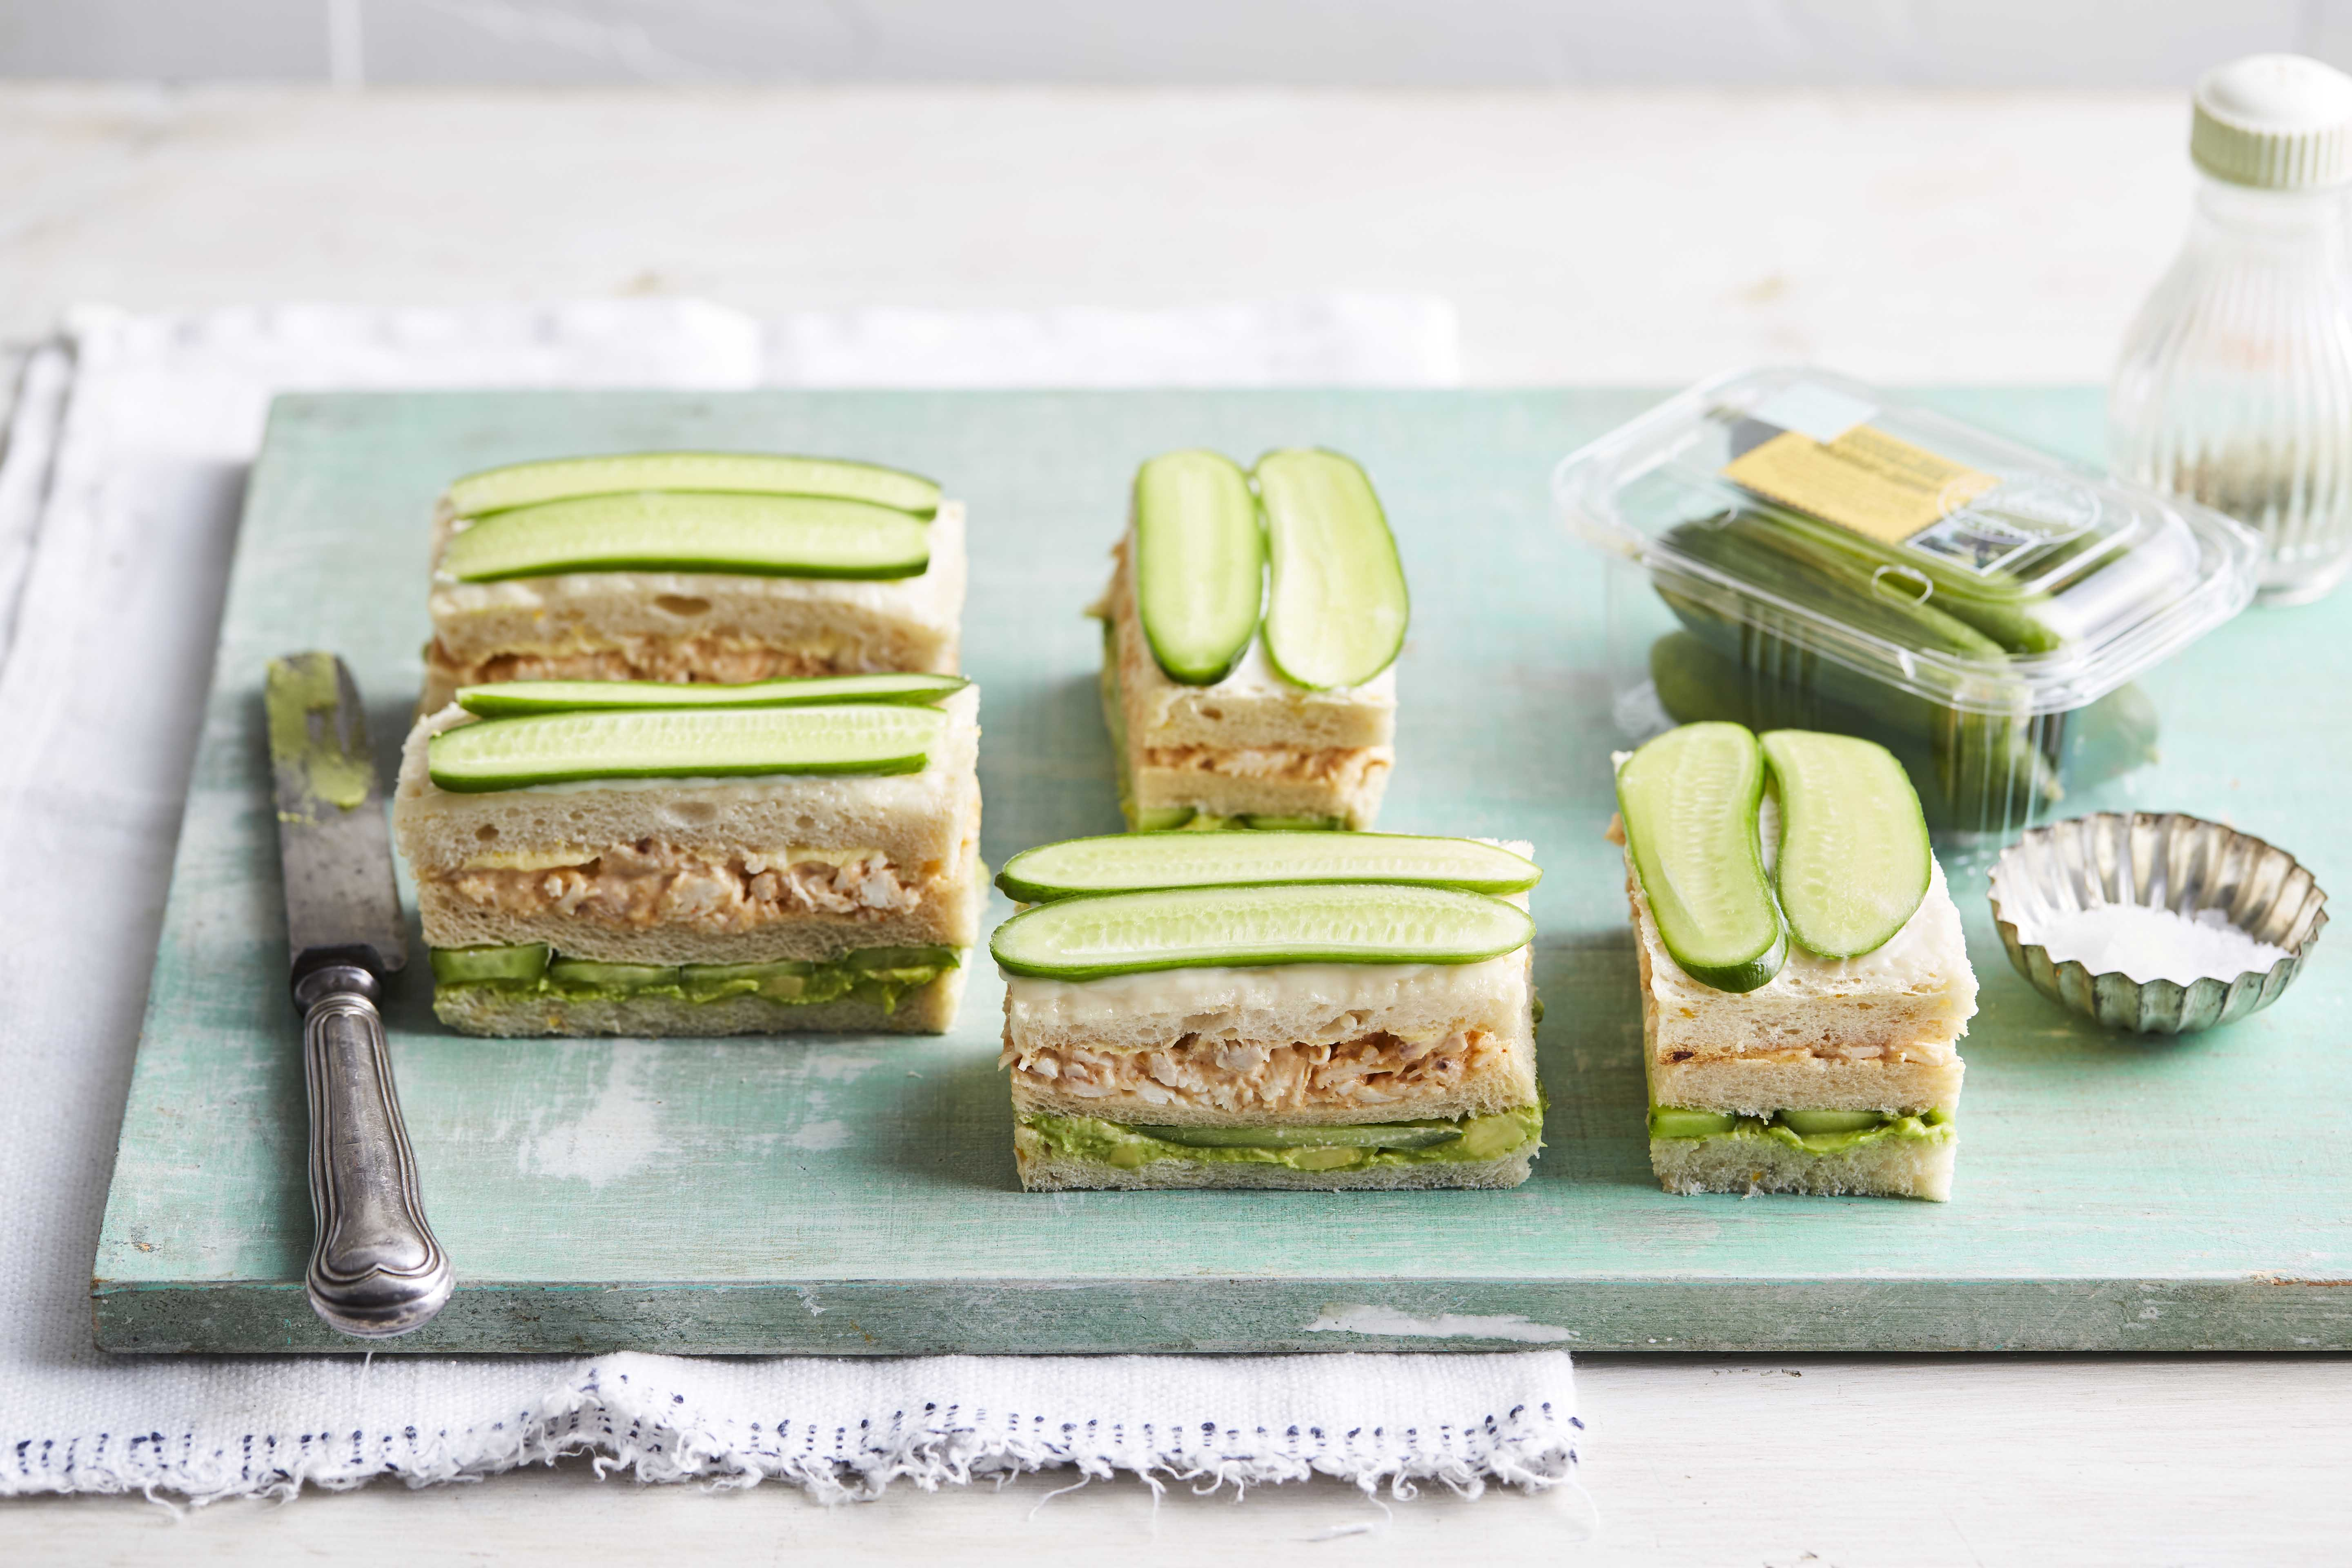 Recipe_LR_Qukes Baby Cucumbers_Mexican Chicken Sandwiches_Janelle Bloom_2017_2